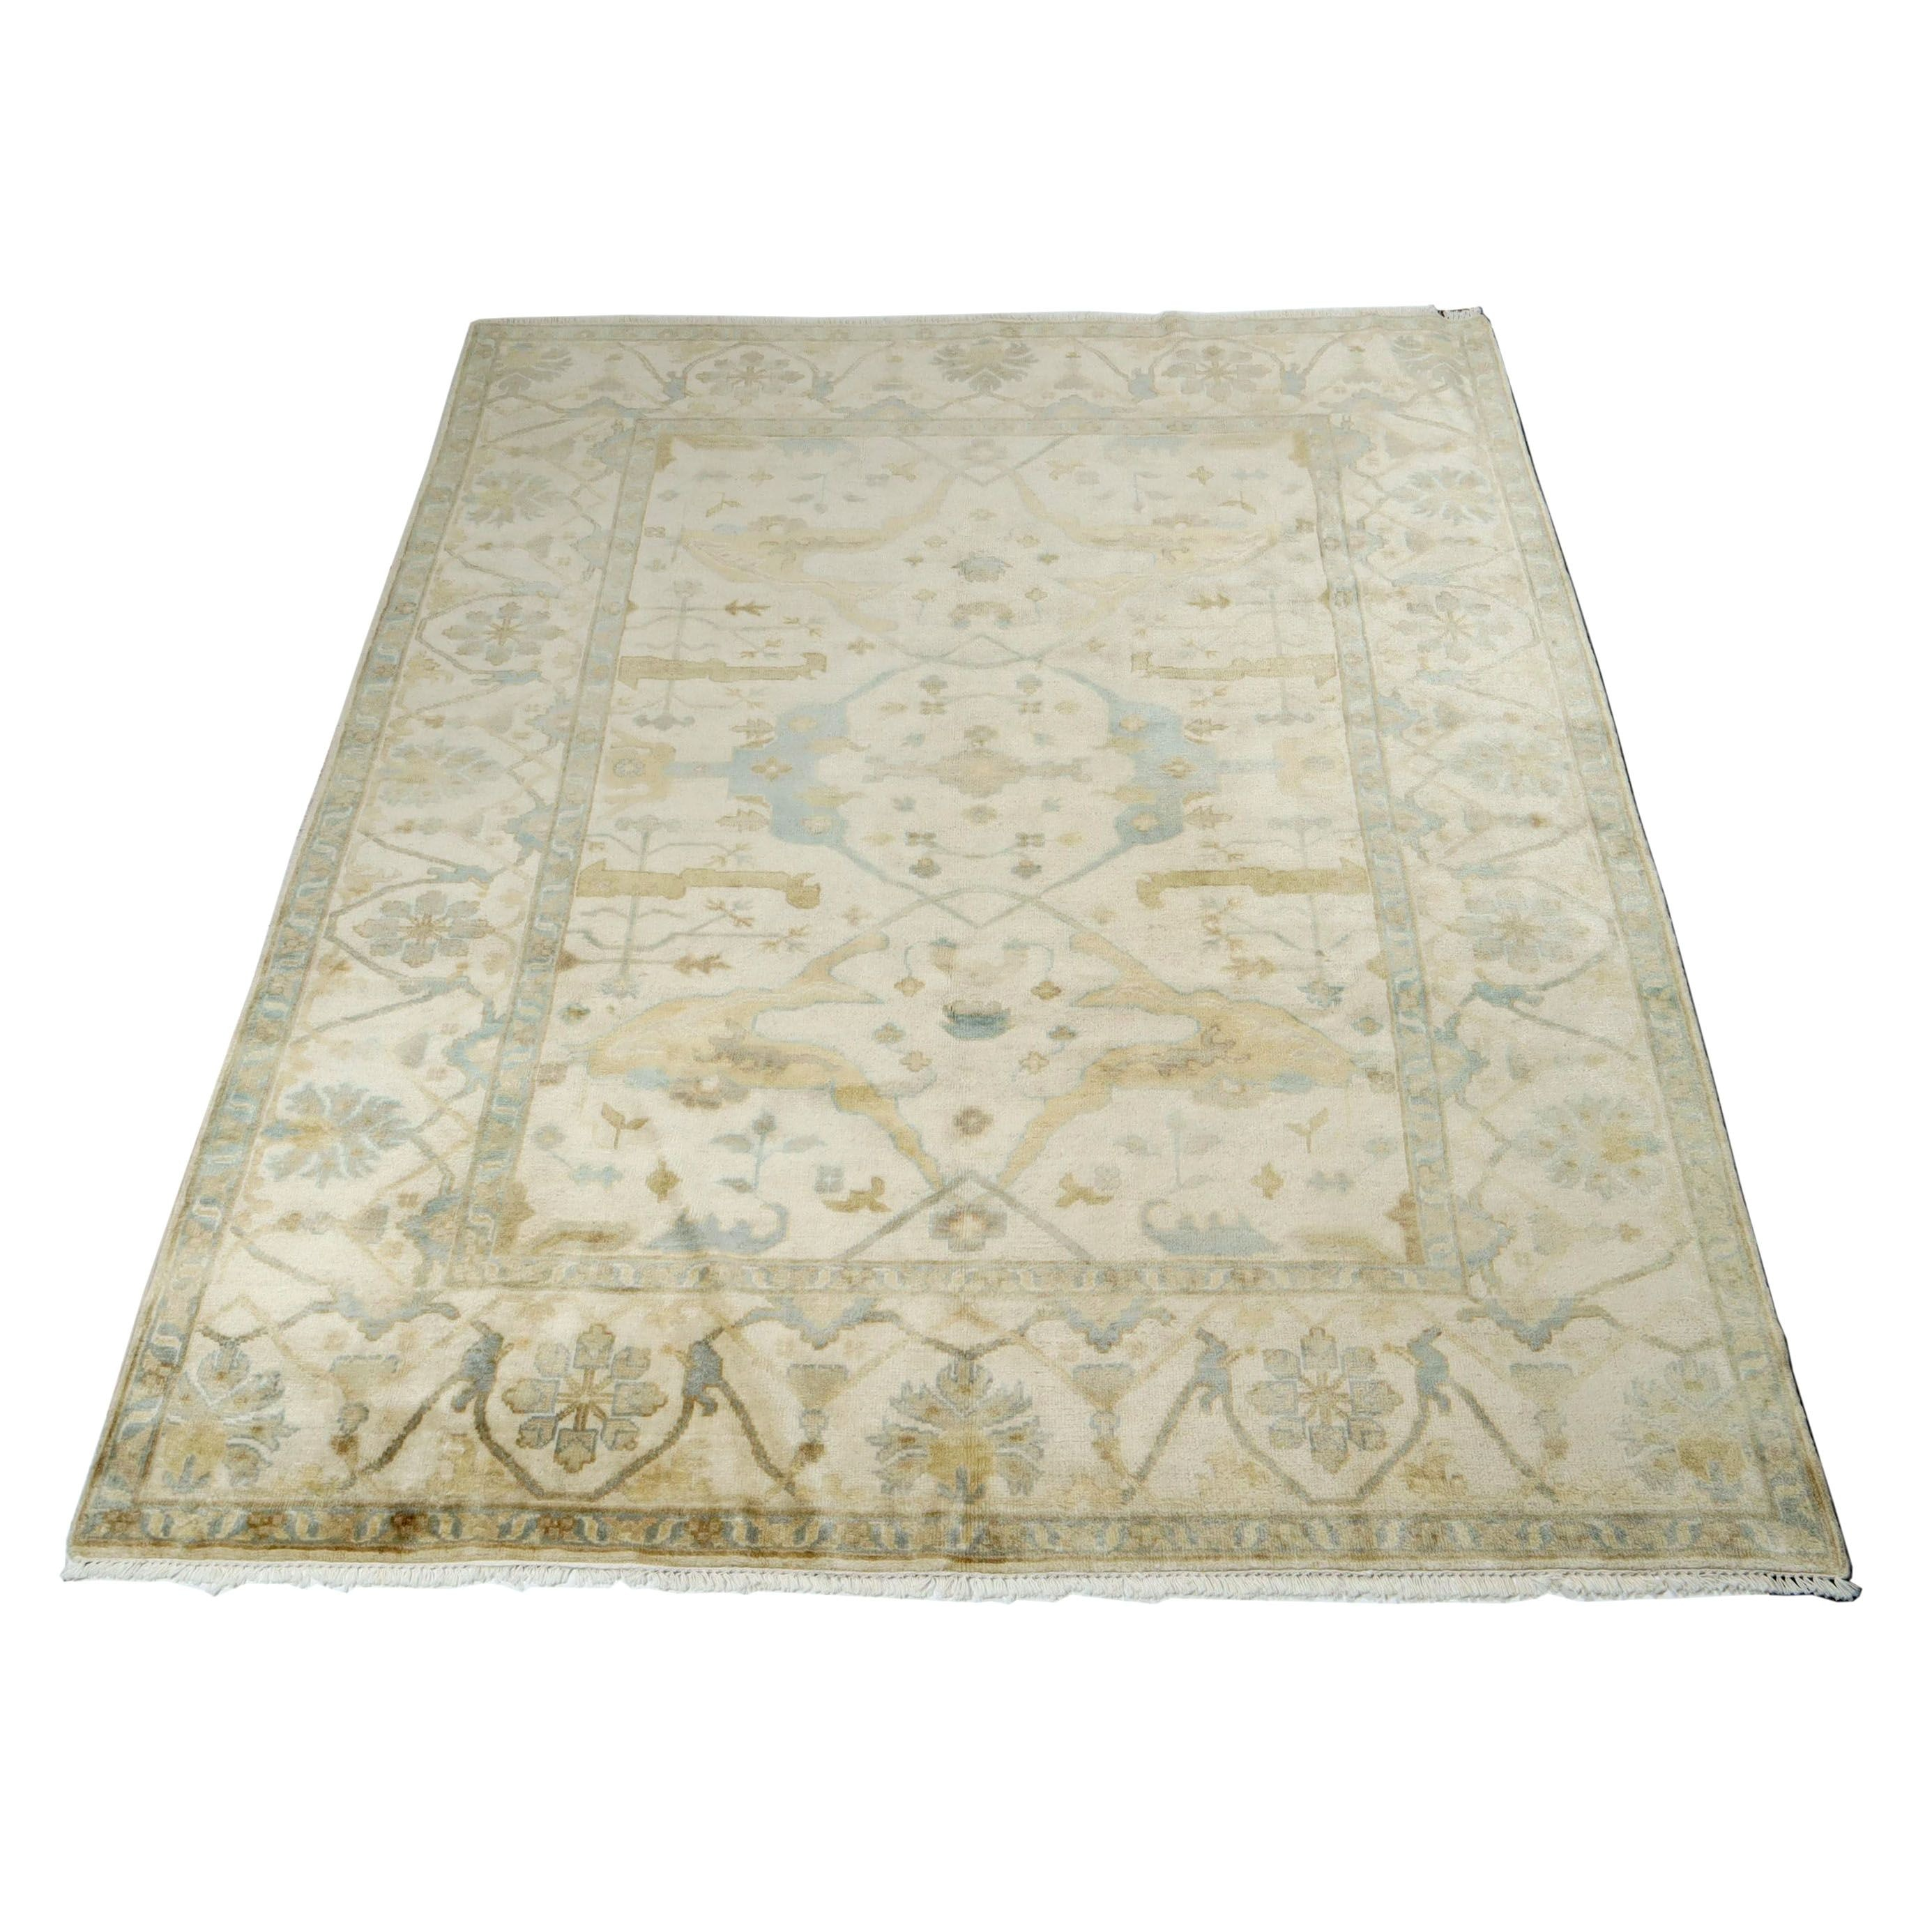 8' x 10' Hand-Knotted Indo Turkish-Oushak Rug